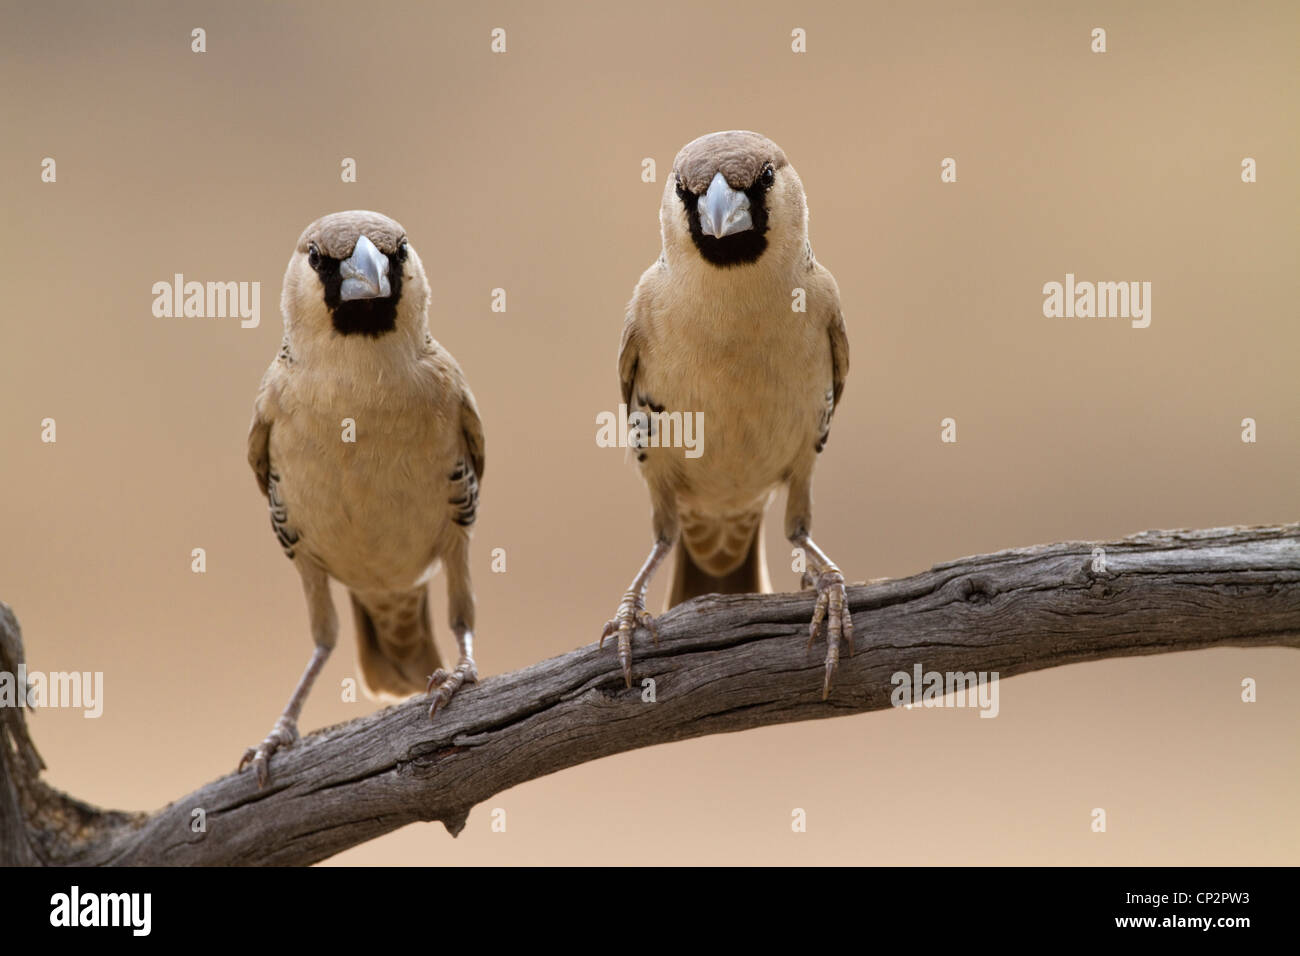 Two sociable weaver birds perched side-by-side on a branch - Stock Image